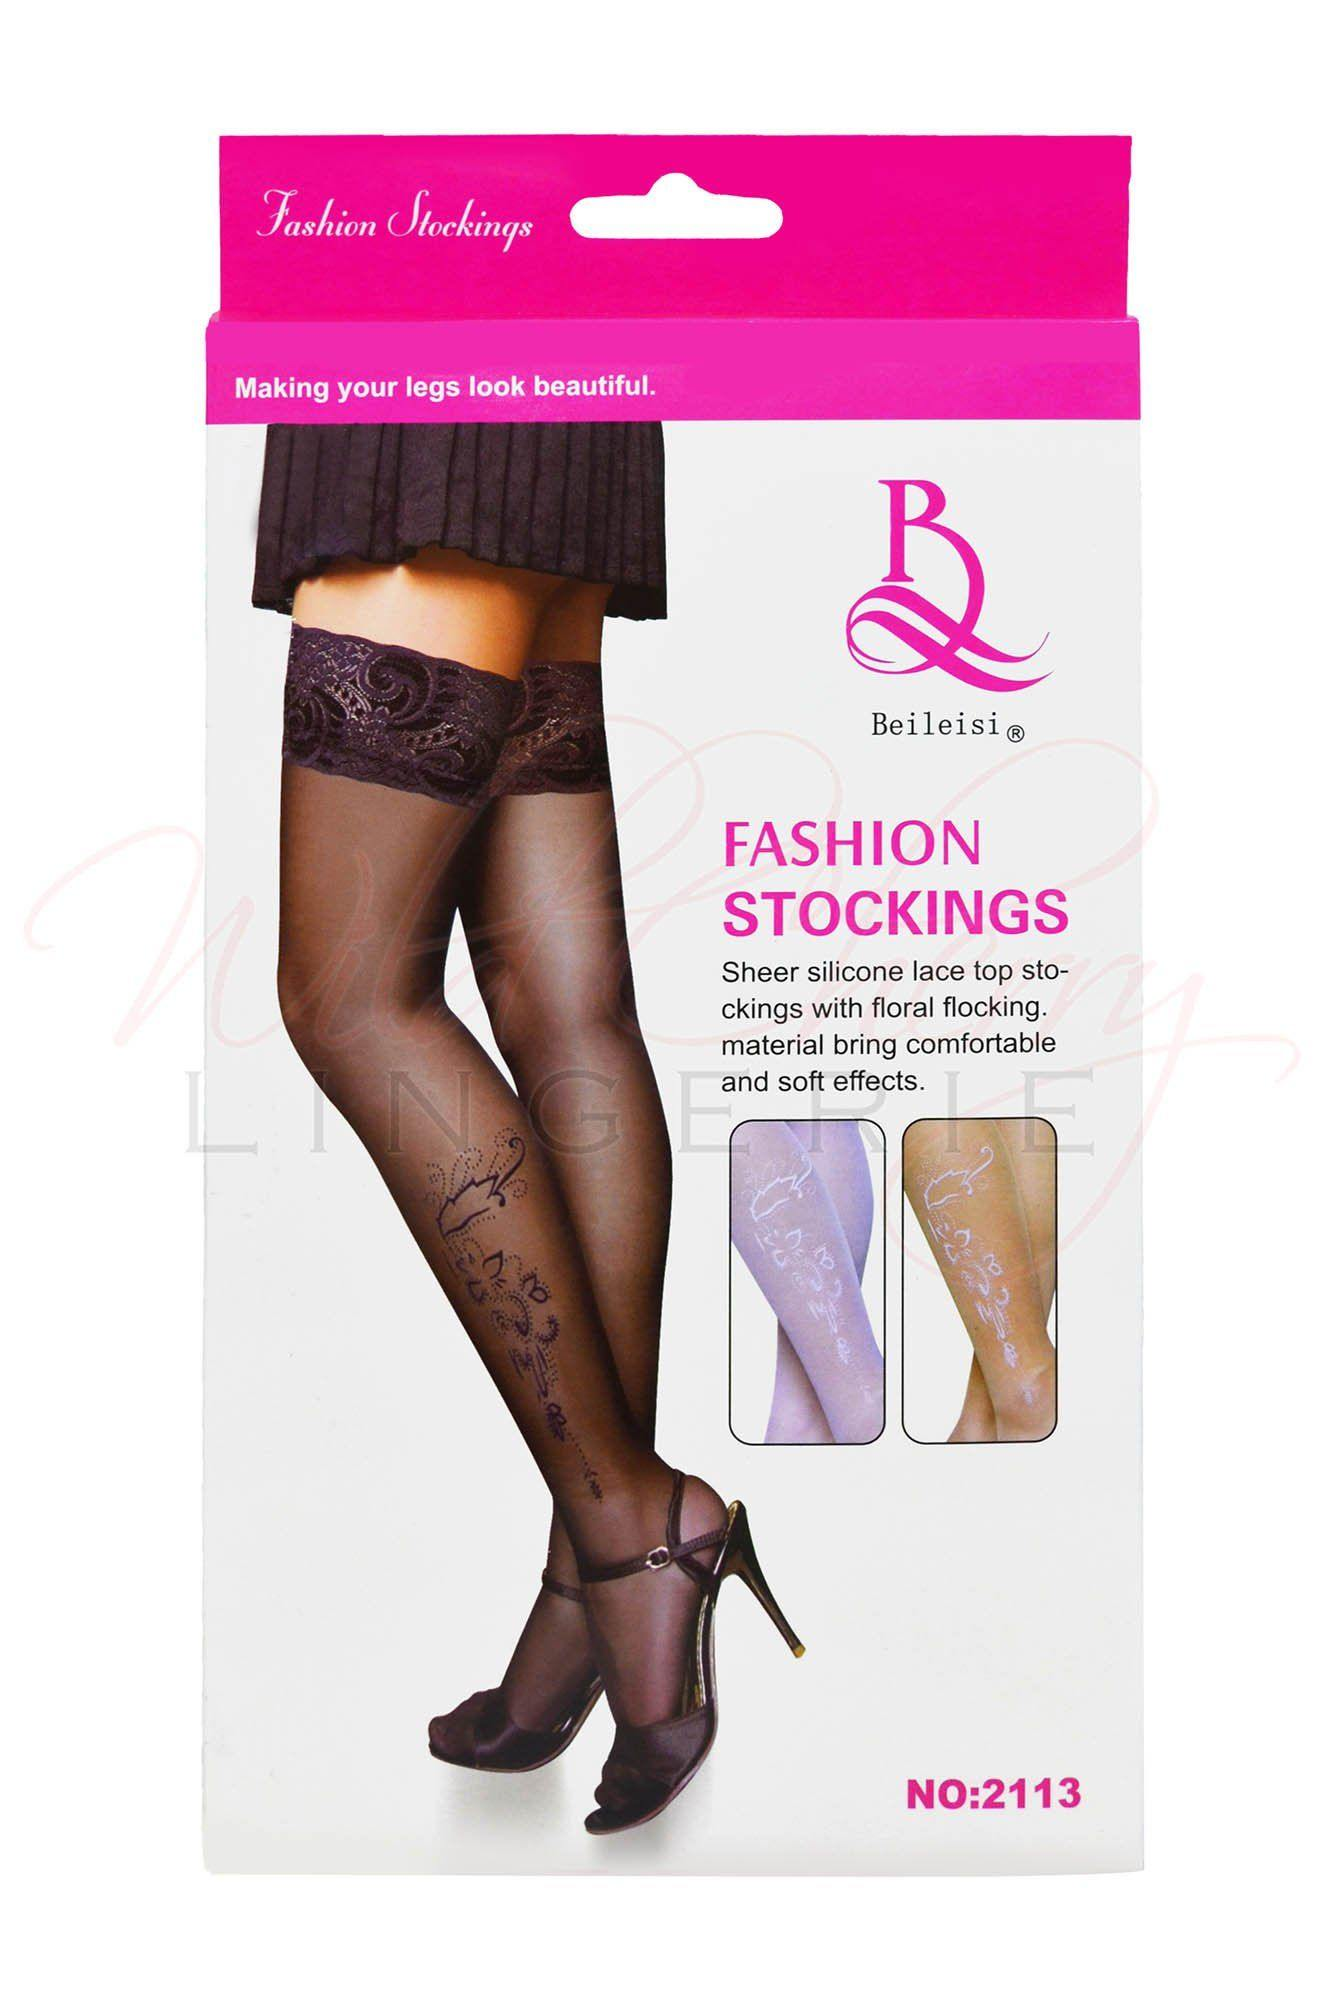 Ready for Anything Thigh High Stockings, Legwear, Unbranded - Wild Cherry Lingerie